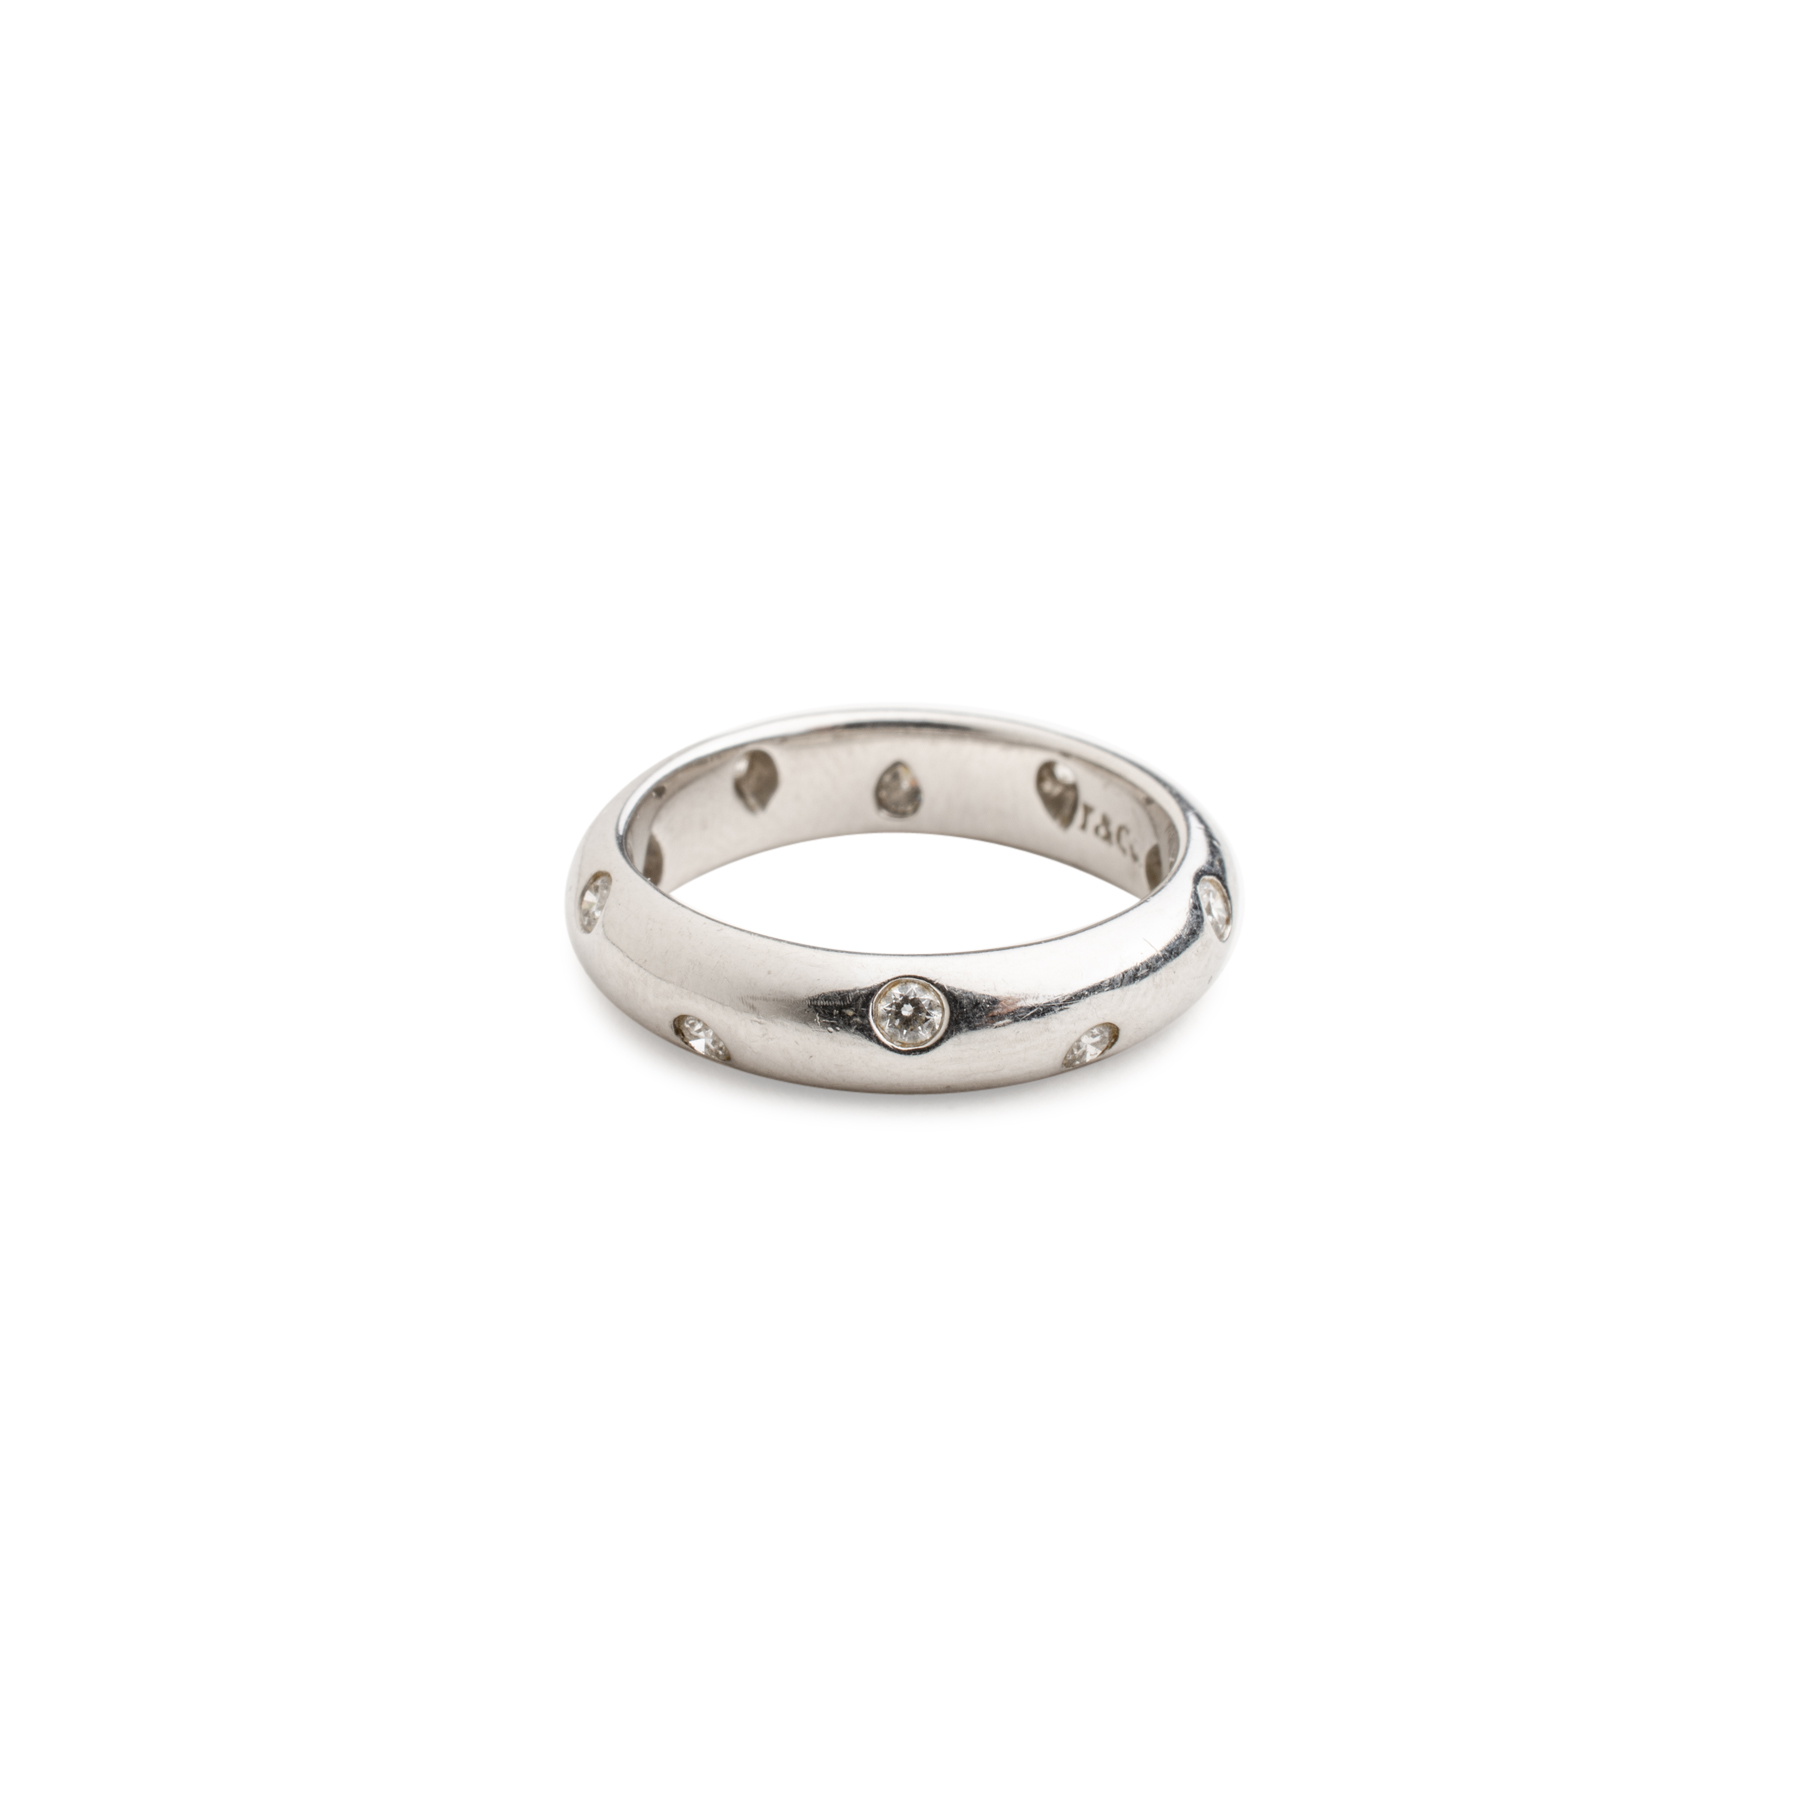 846e48f9f Authentic Second Hand Tiffany & Co Etoile Diamond Ring (PSS-666-00002) -  THE FIFTH COLLECTION